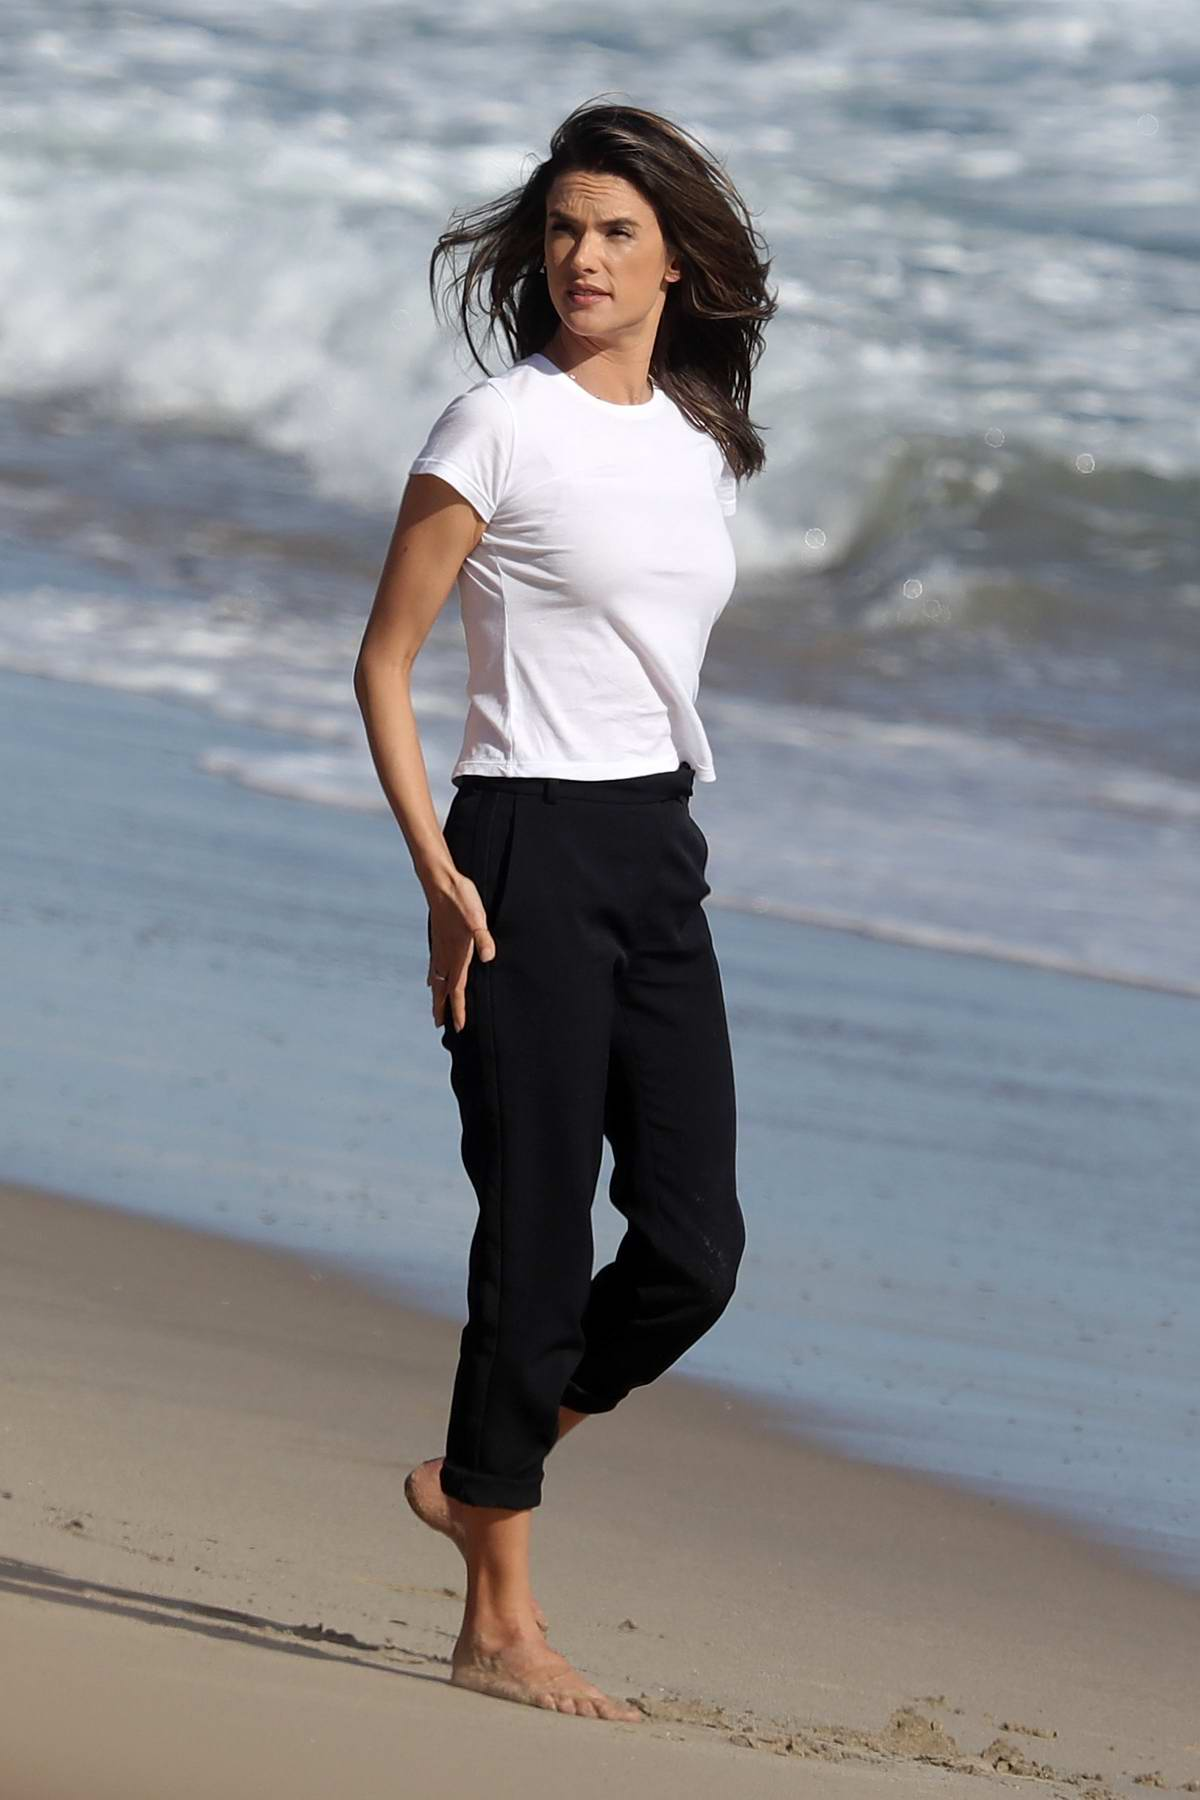 Alessandra Ambrosio enjoys the serenity during a photoshoot at the beach in Malibu, California